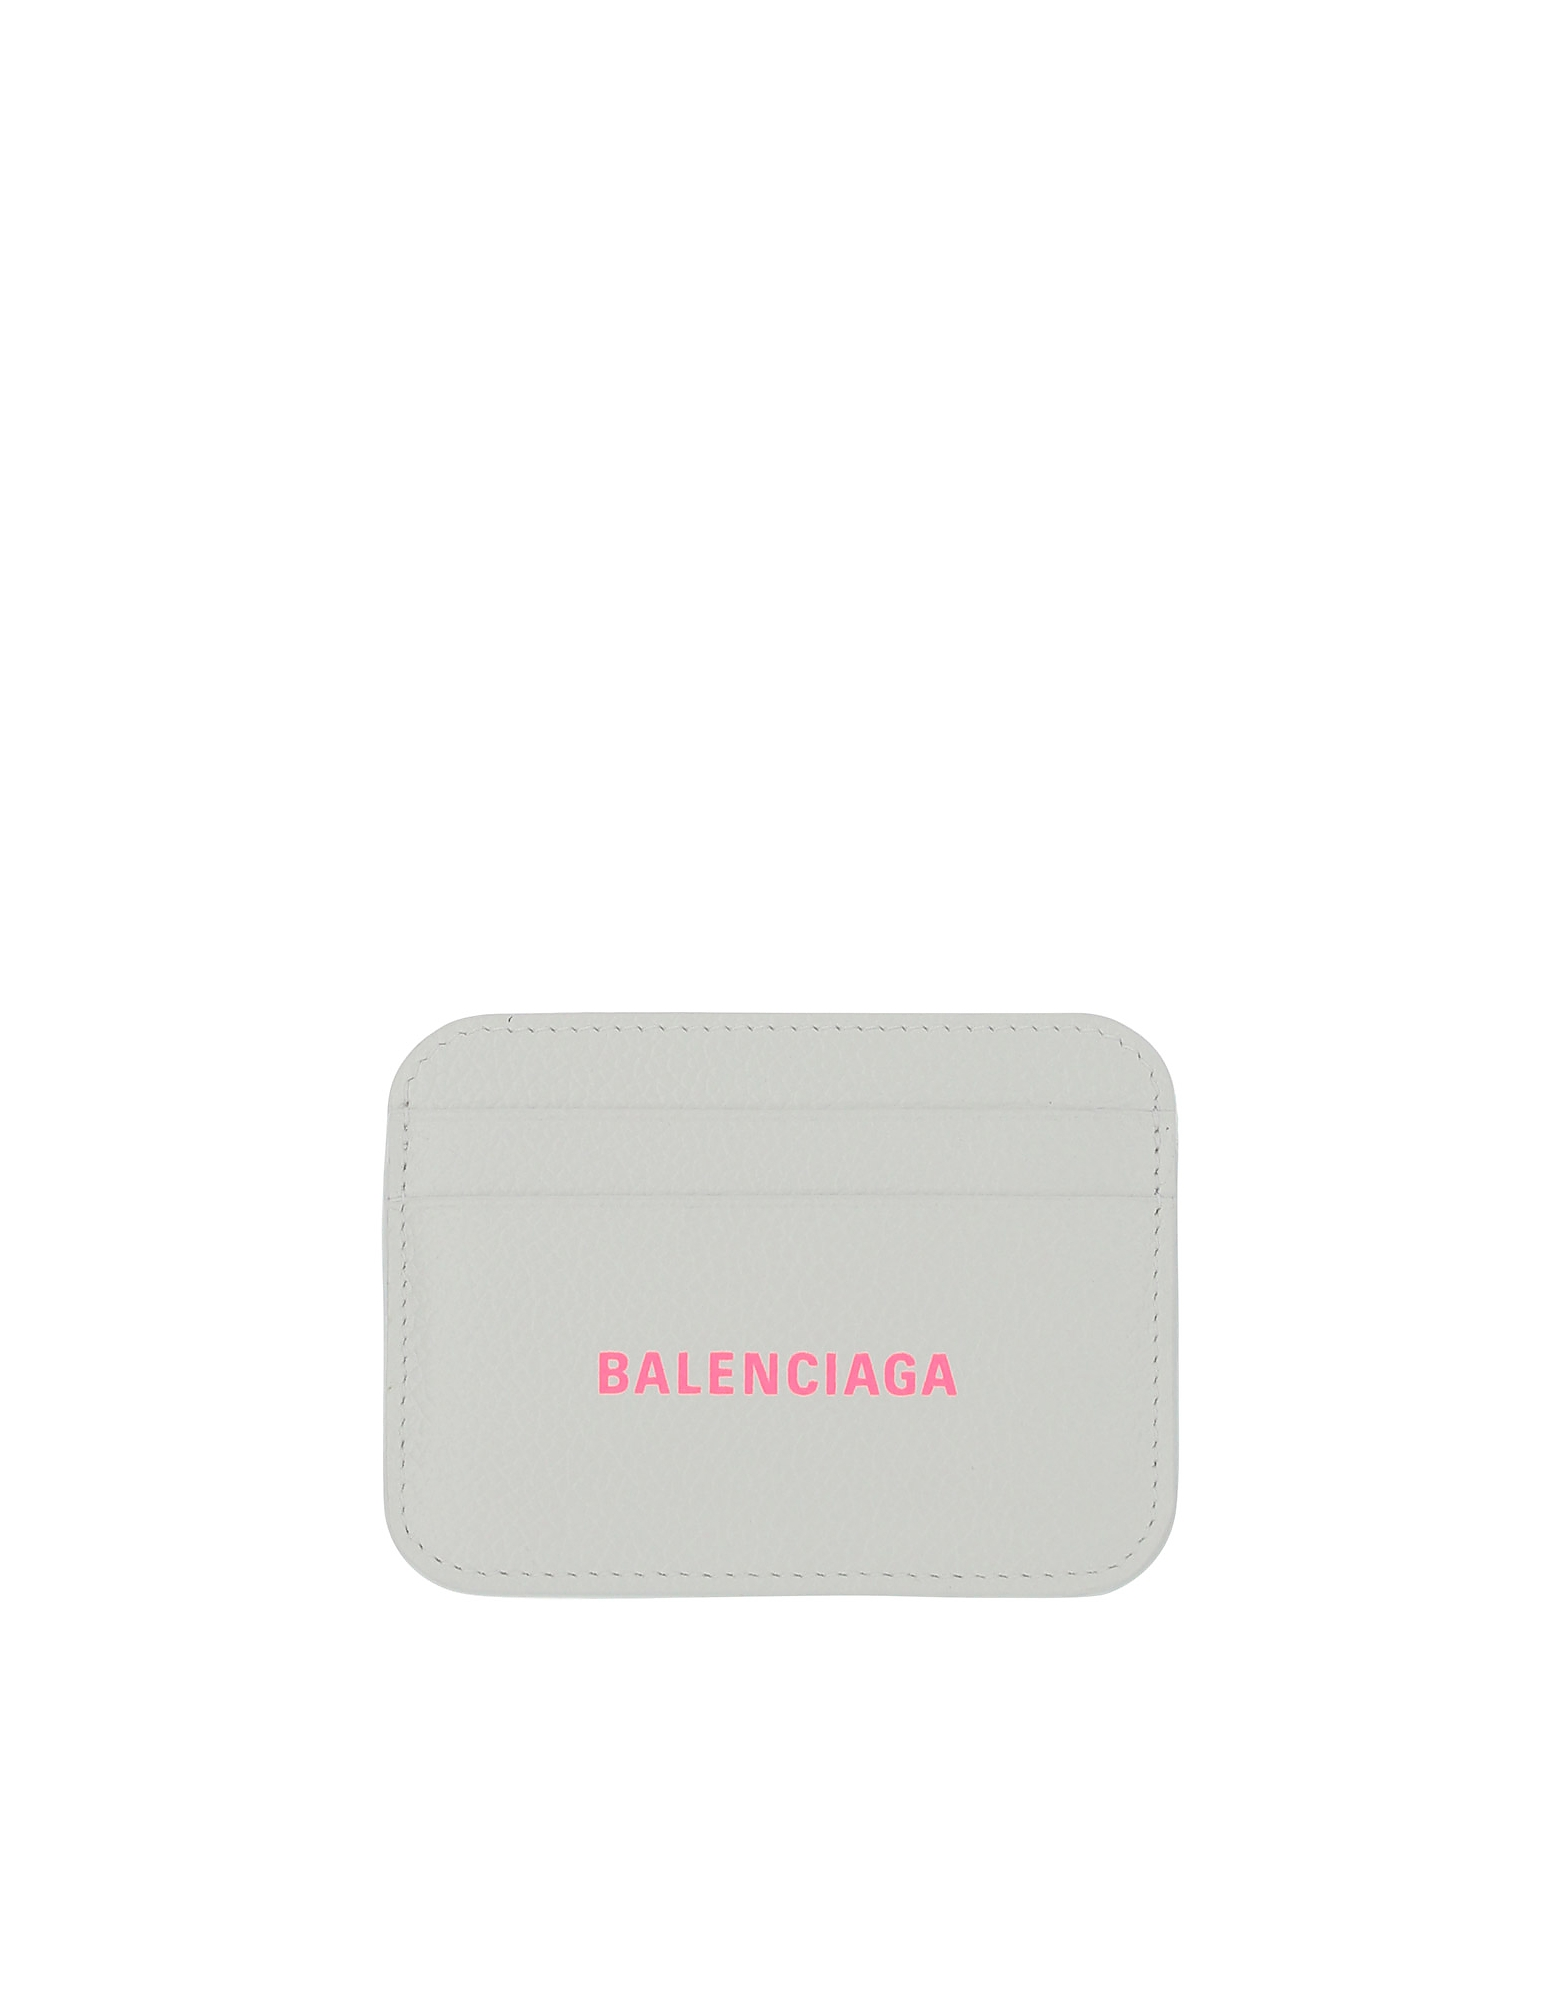 Balenciaga Designer Wallets, White Leather Signature Card Holder